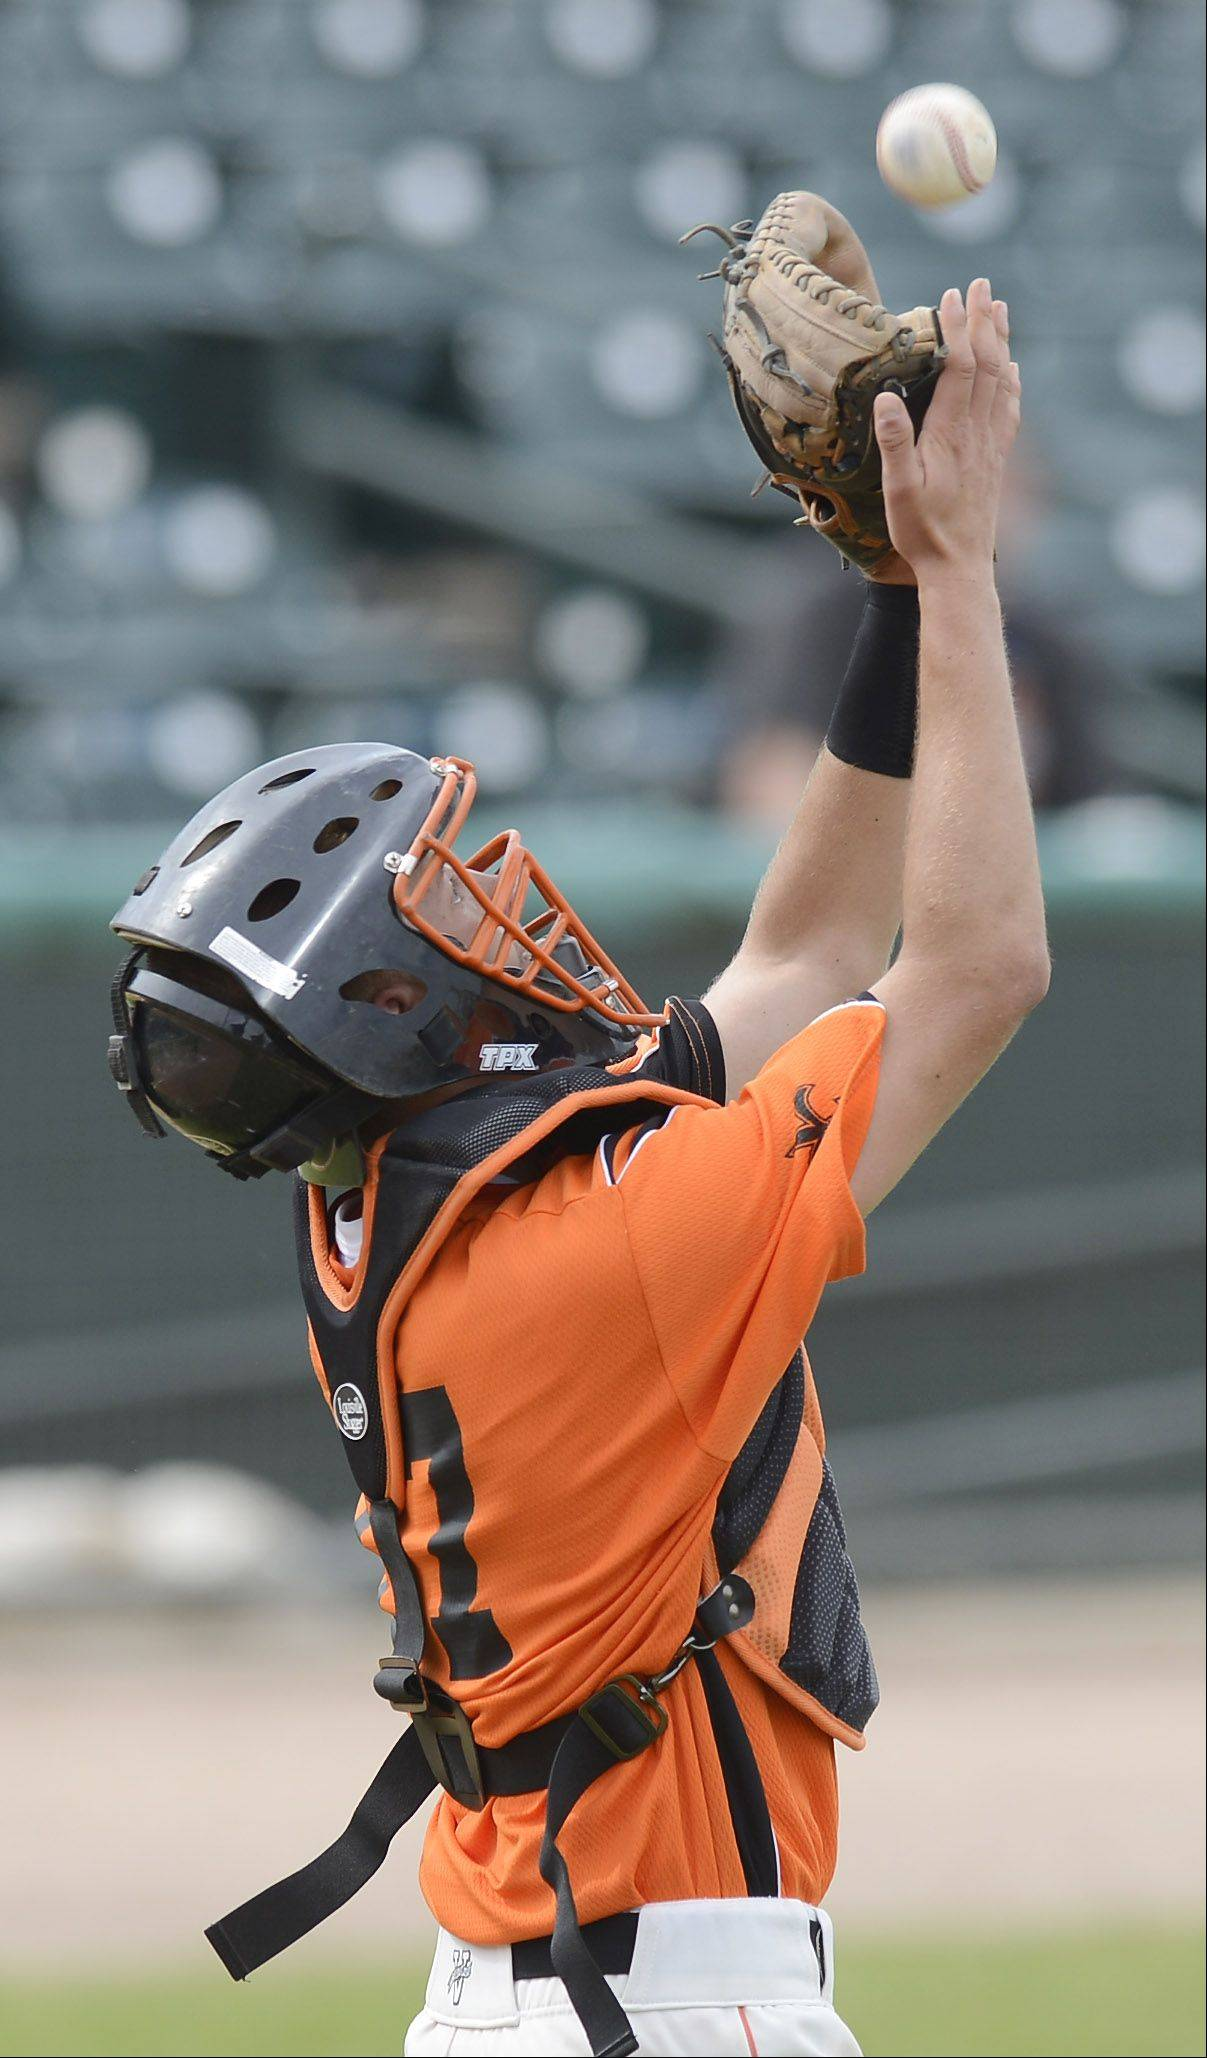 St. Charles East catcher Adam Rojas catches a pop fly on the infield during the Class 4A baseball third-place game at Silver Cross Field in Joliet on Saturday.